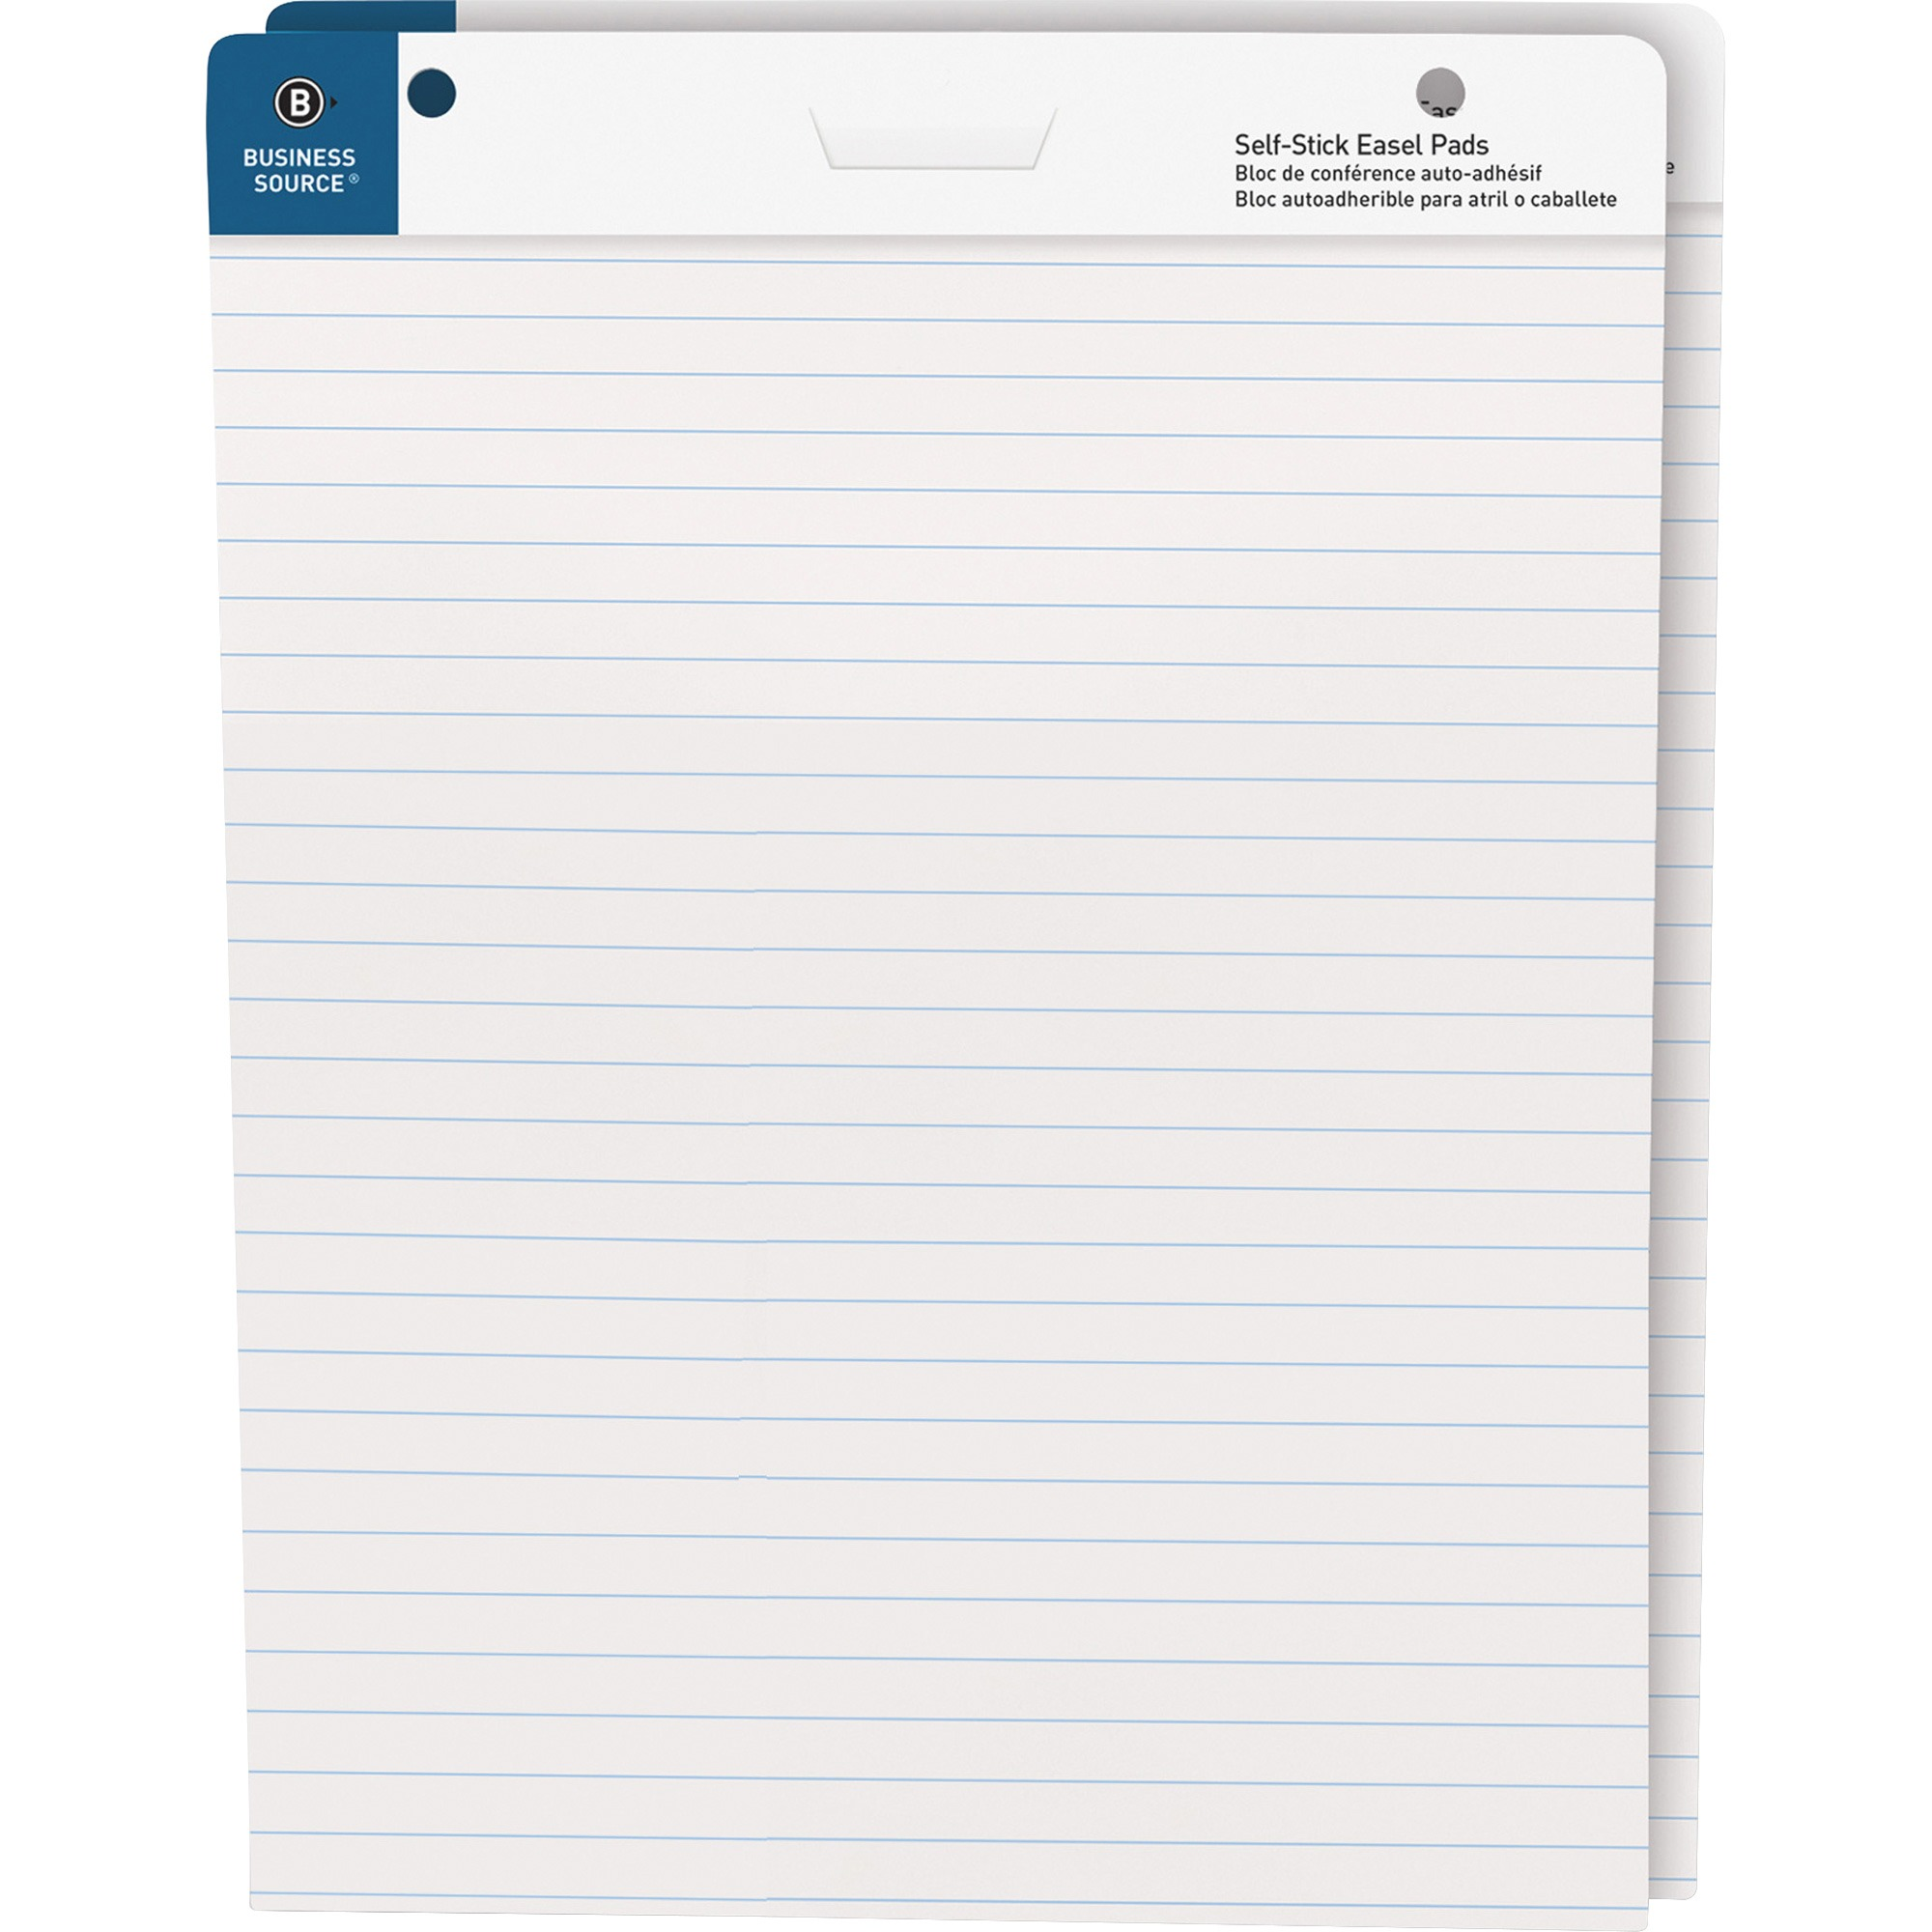 "Business Source, BSN38593, 25""x30"" Lined Self-stick Easel Pads, 2 / Carton"